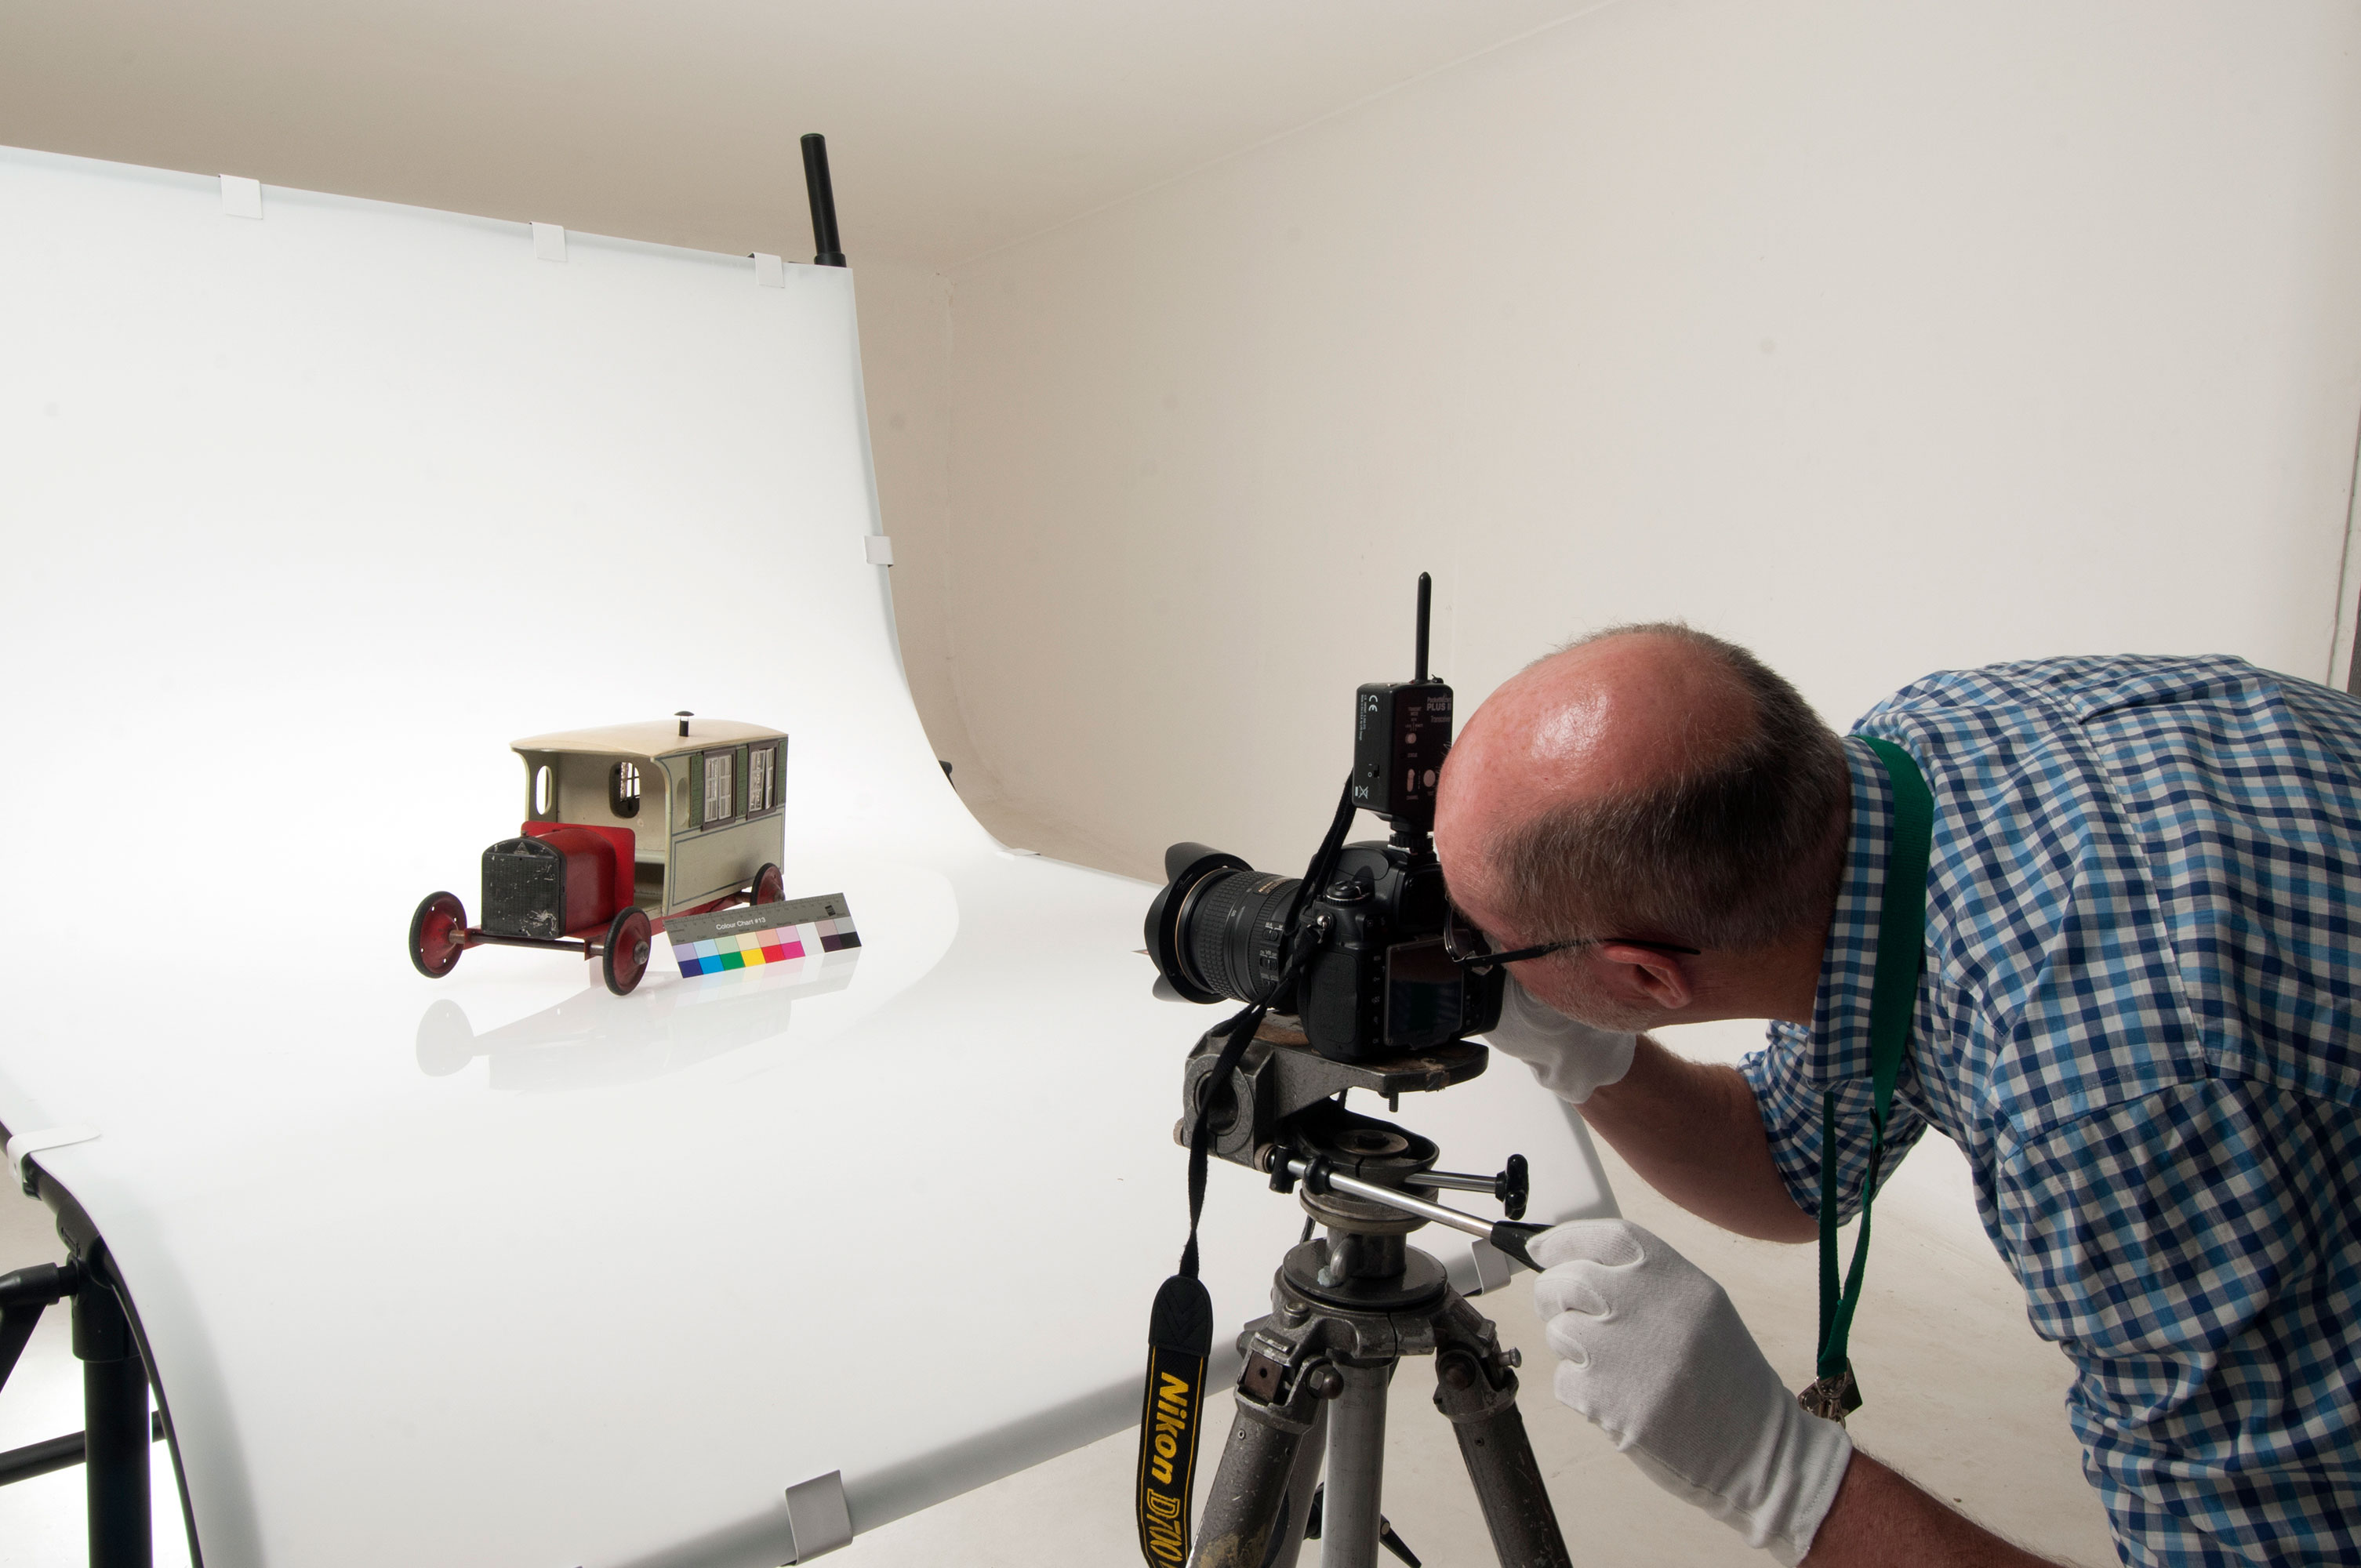 A man in a photographic studio taking a photograph of a historic toy car